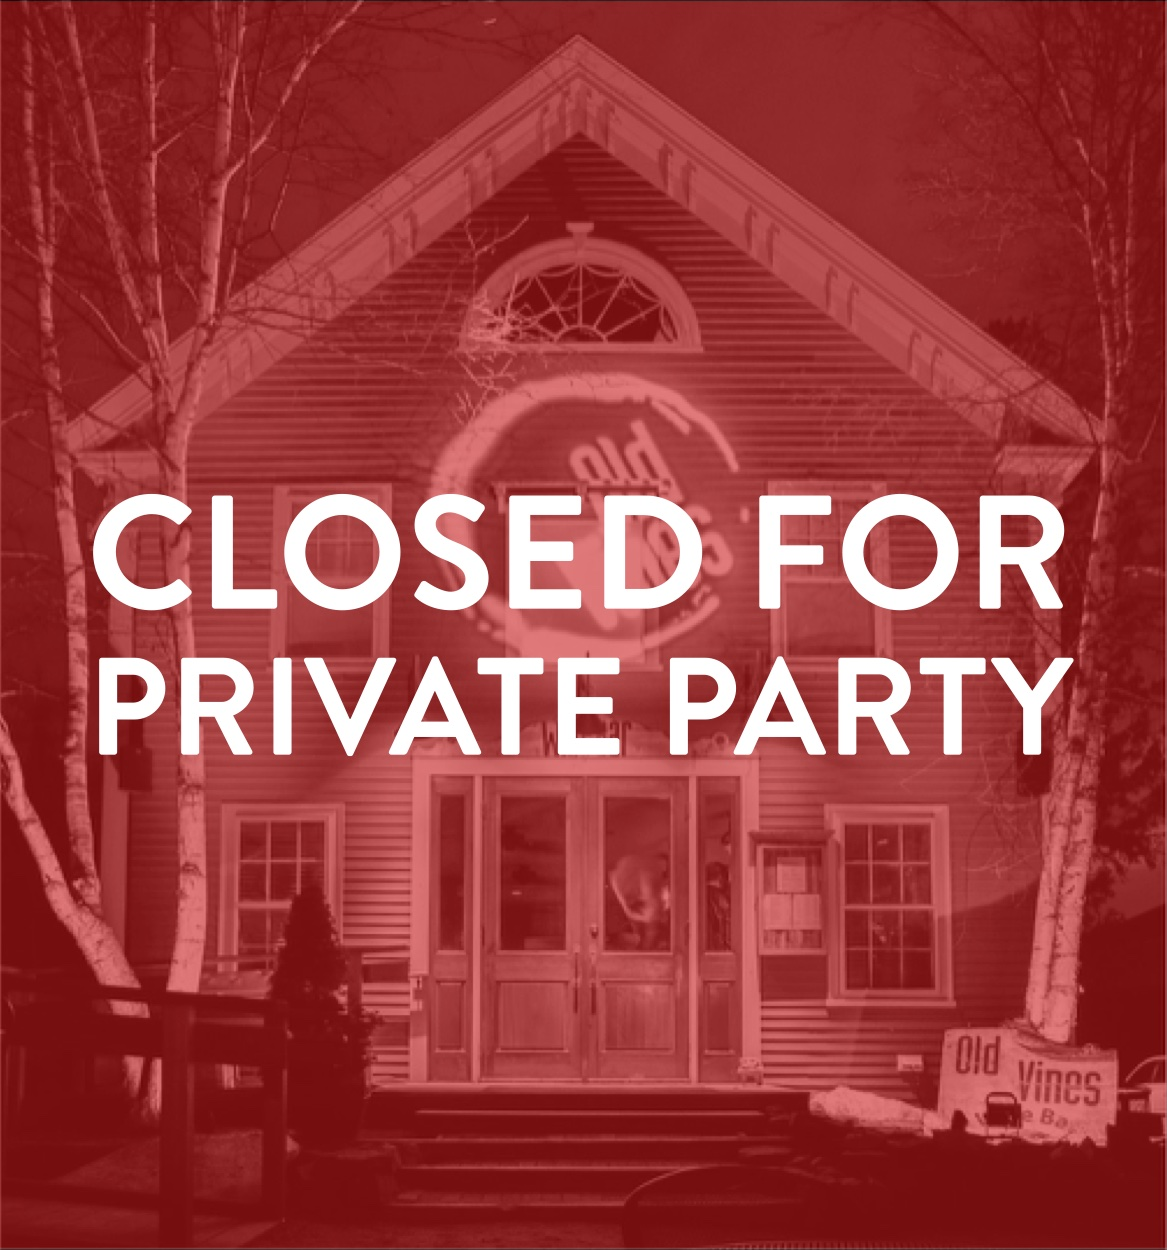 2017 closed for private party thumbnail.jpg